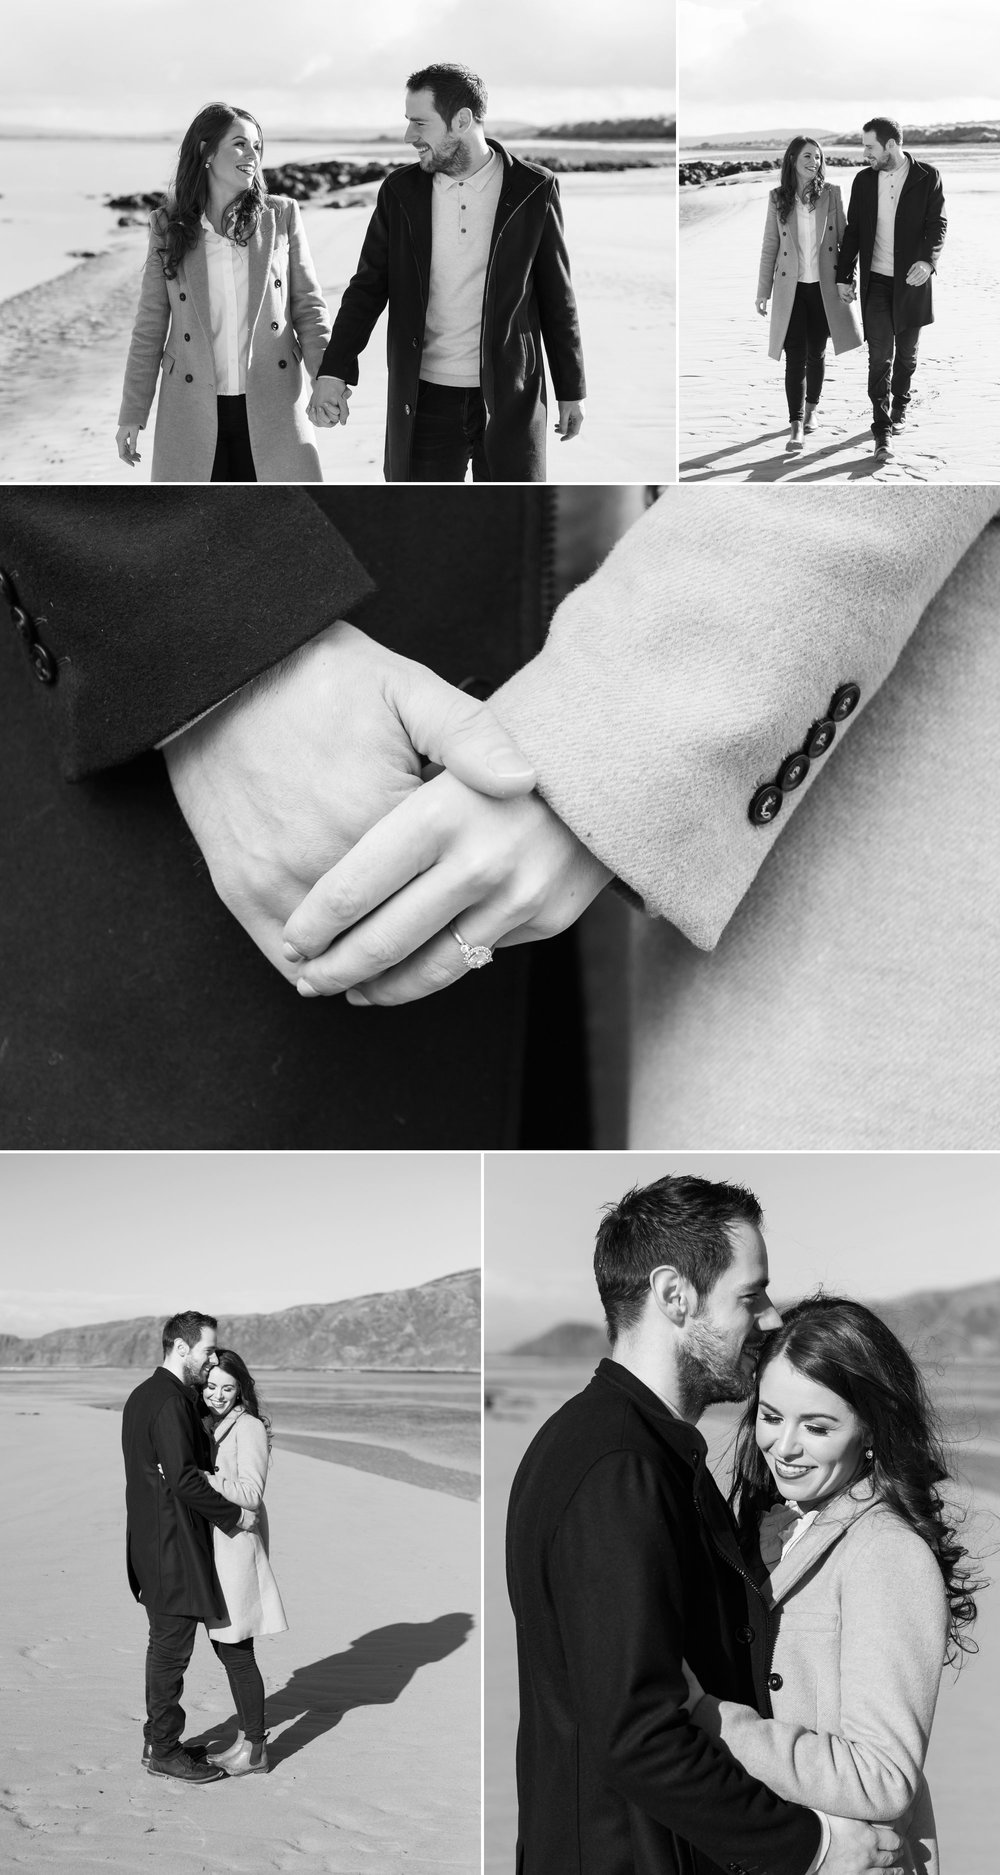 Leanne-and-Dave-Ballyliffin-Engagement-0007-Michael-Gill-Photography.jpg